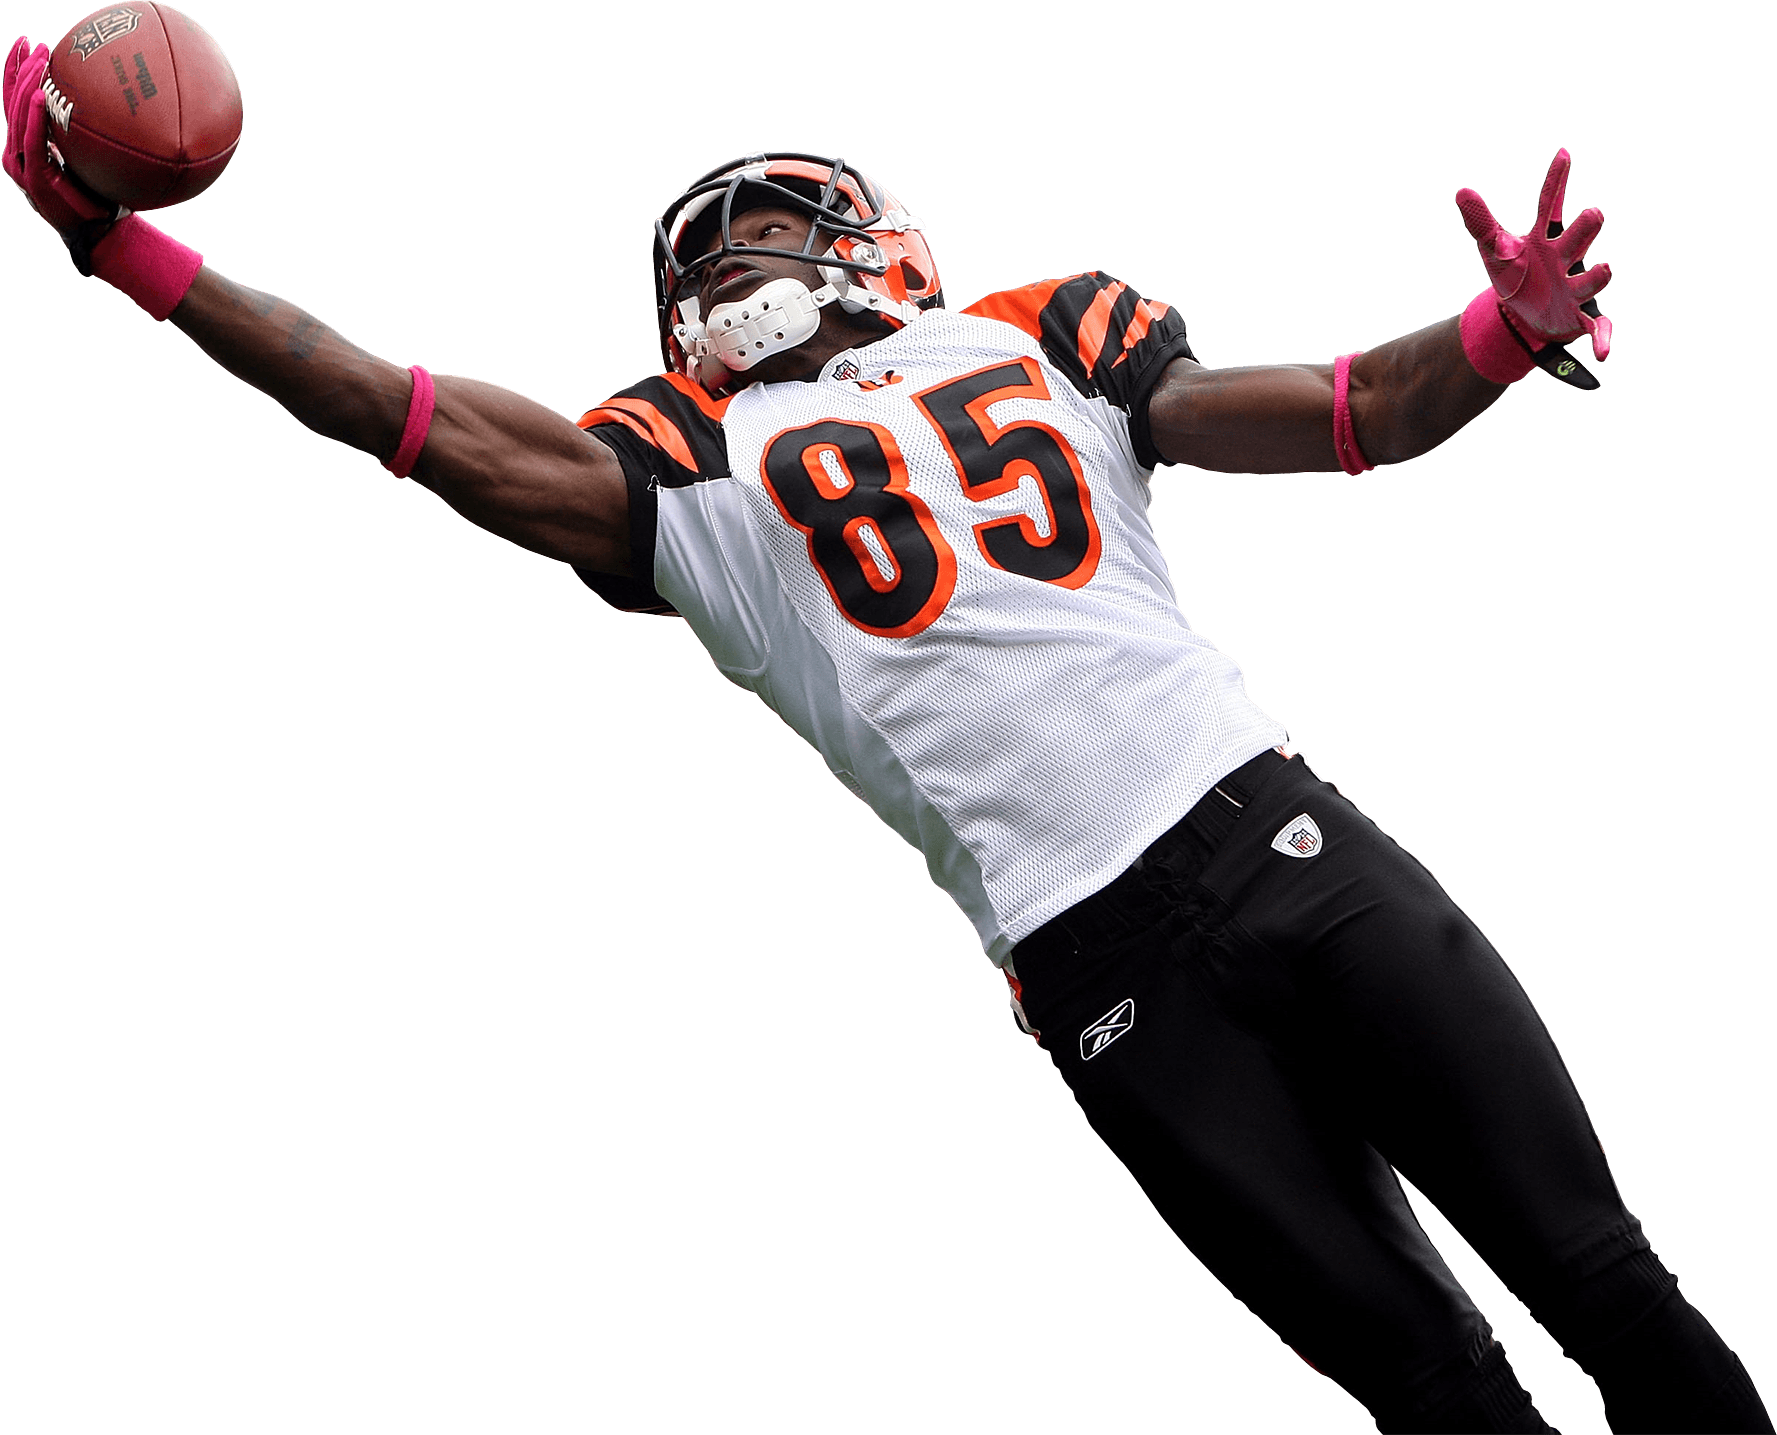 American Football Player Wallpaper: NFL Players Wallpapers